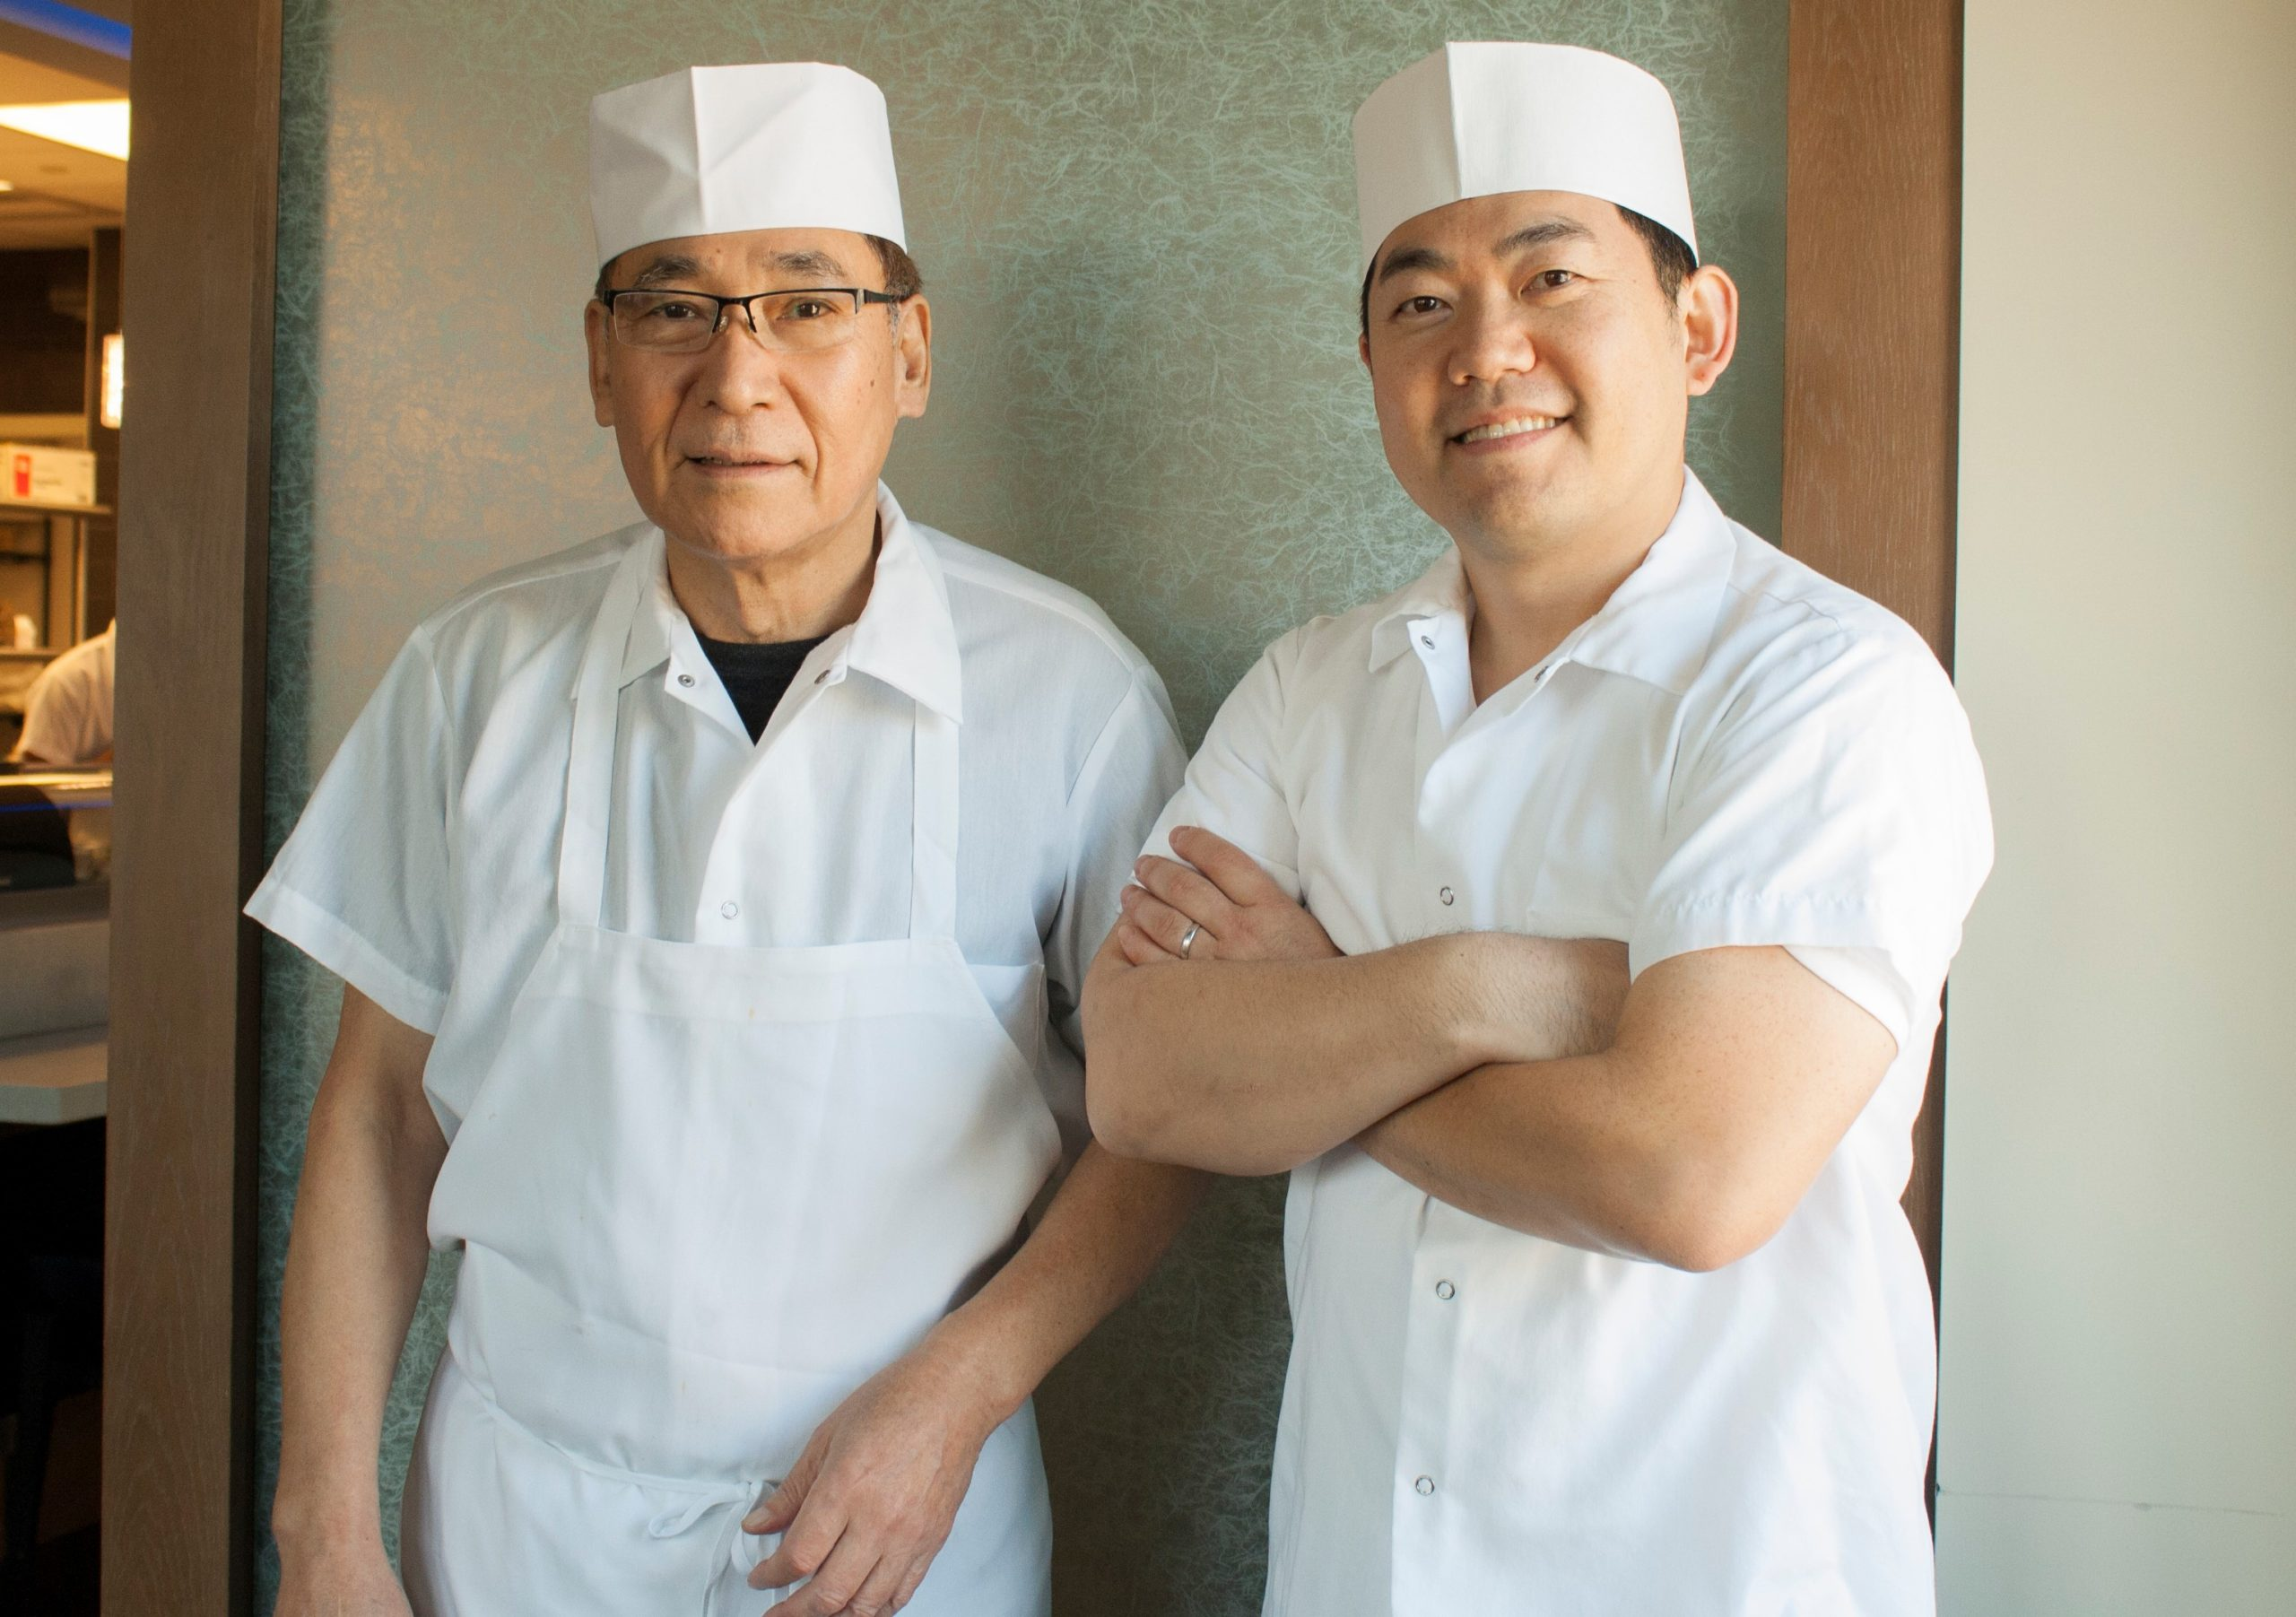 Bluefin Eagleview a Showcase for the Skill, Wisdom of Two Top-Tier Sushi Chefs